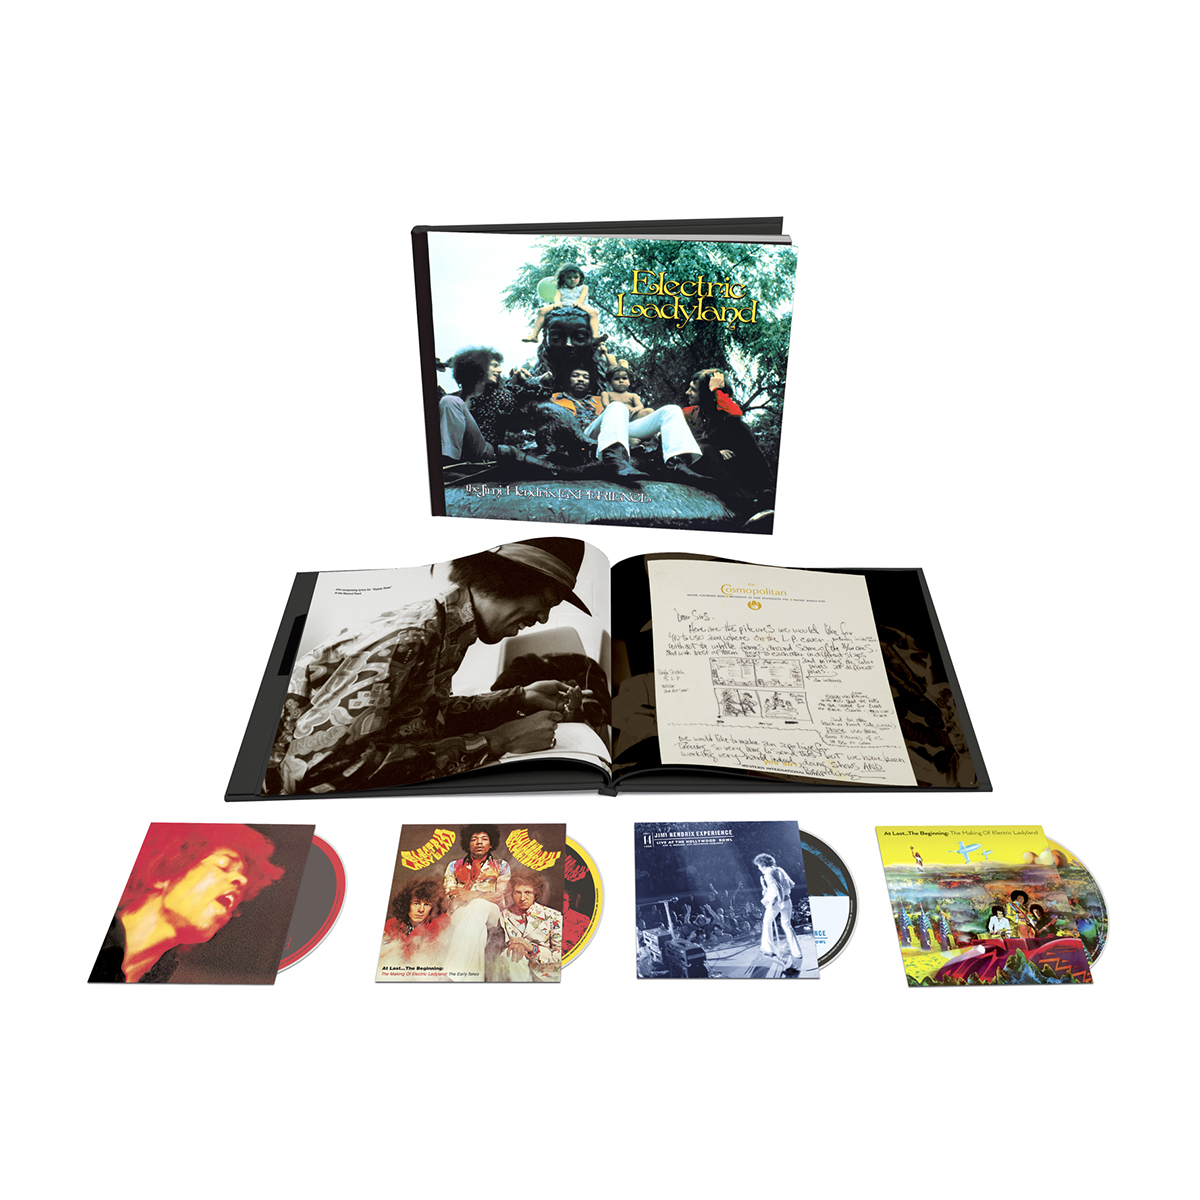 Jimi Hendrix Experience: Electric Ladyland – 50th Anniversary Deluxe Edition CD Box Set